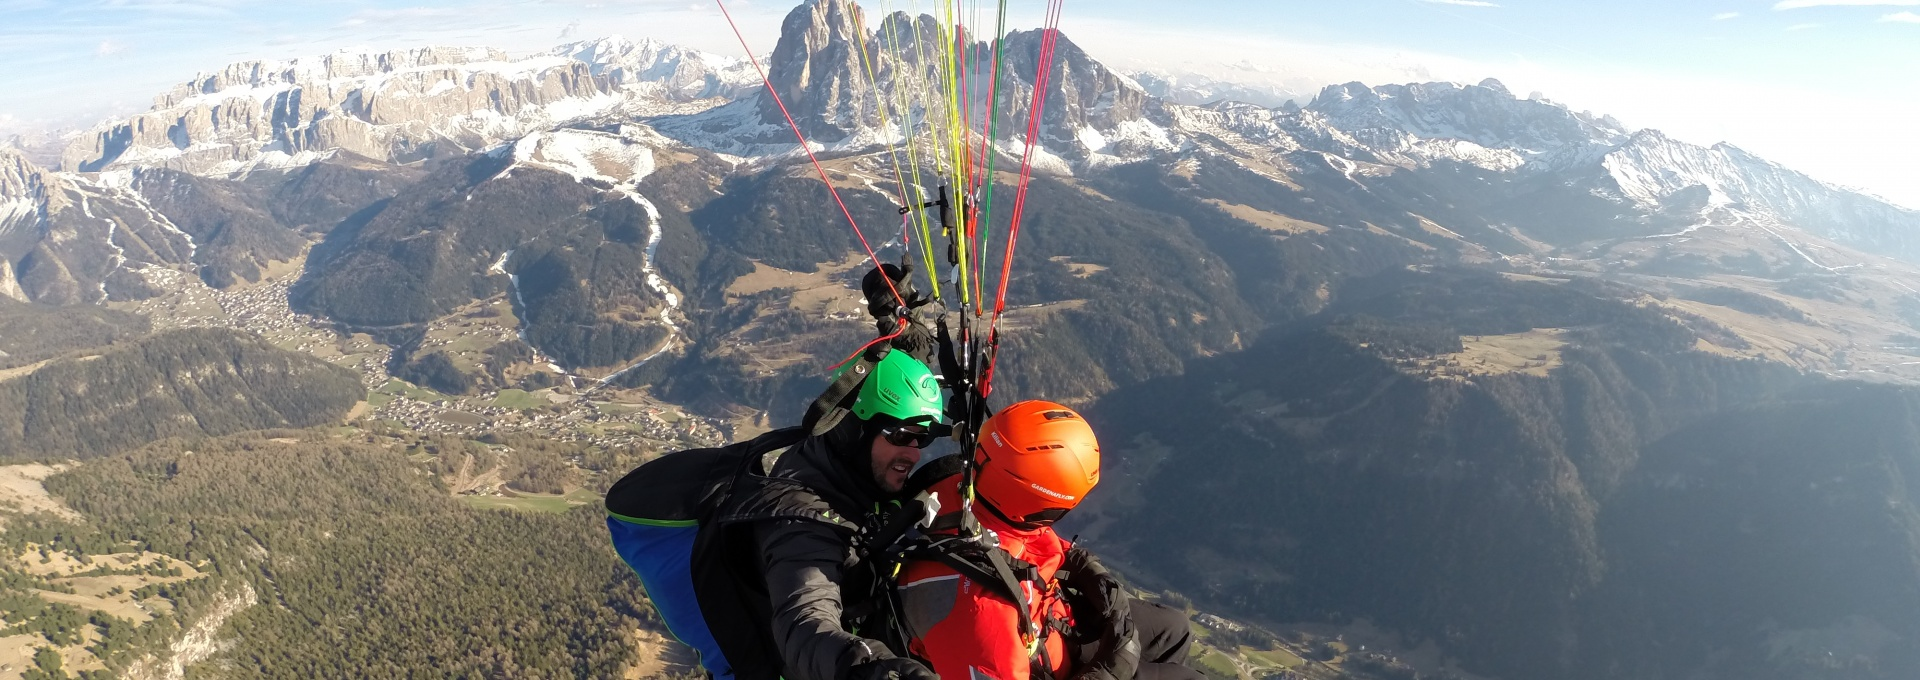 Paragliding in the Dolomites - Val Gardena